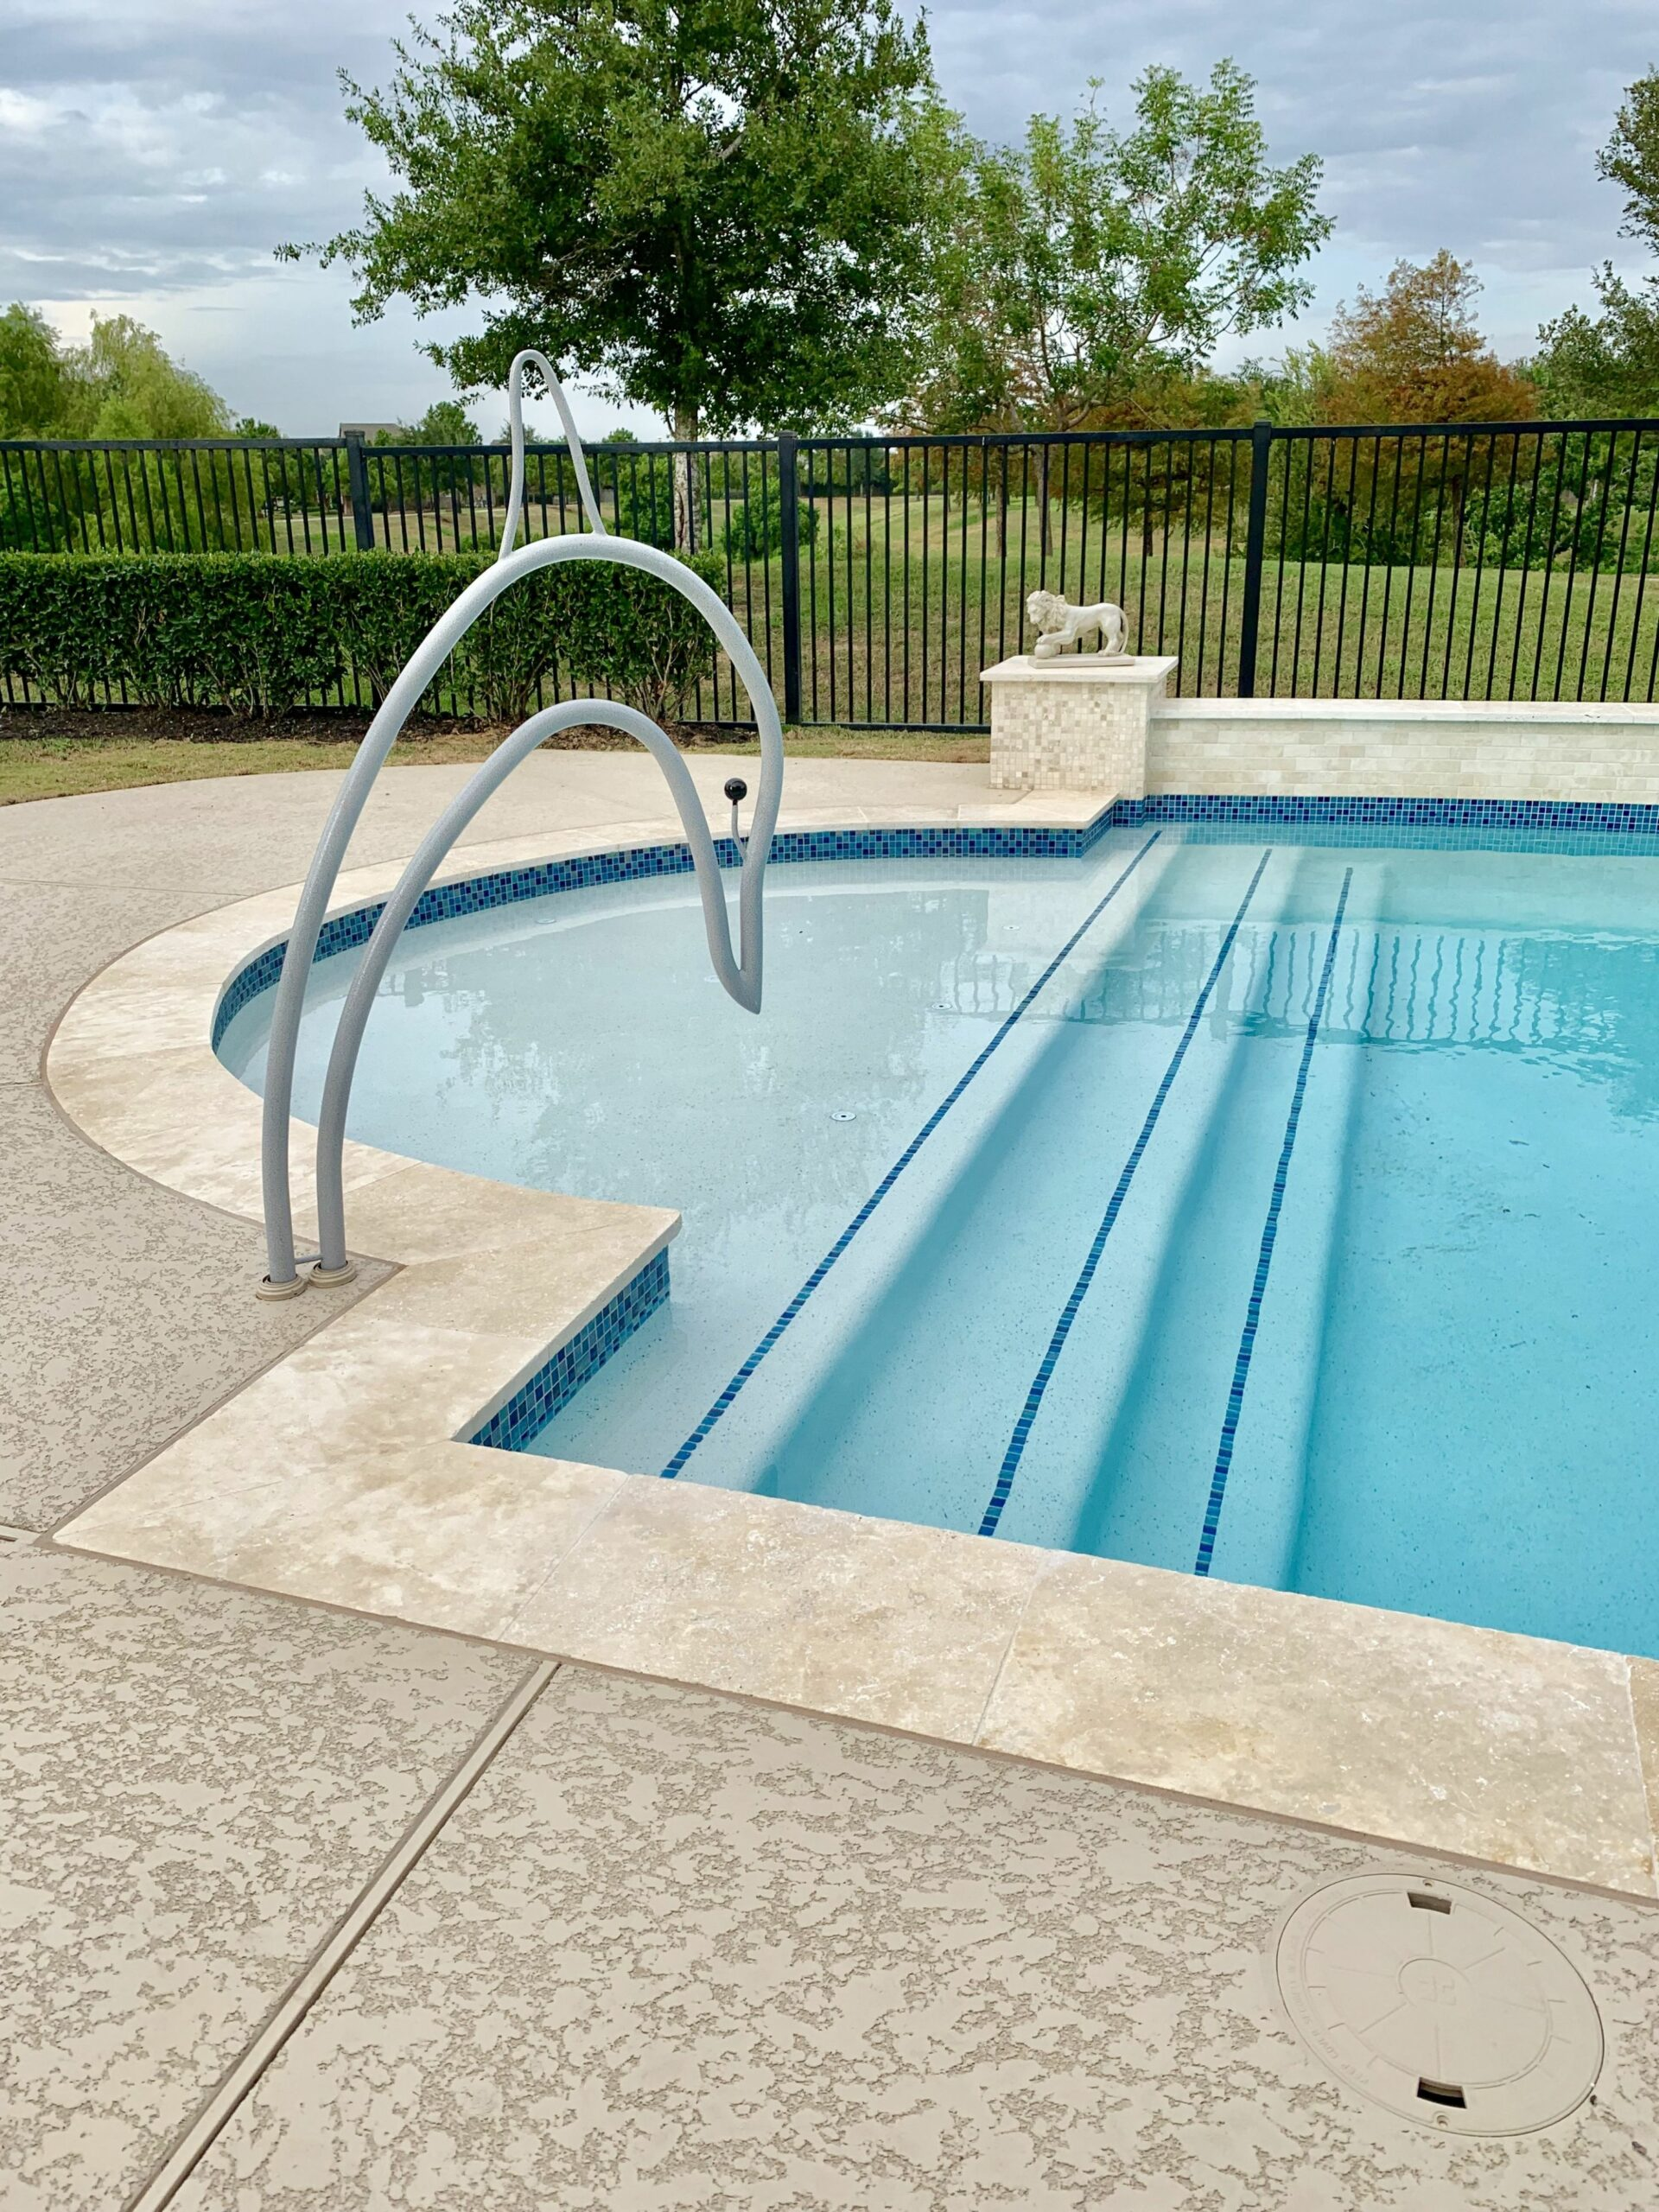 Pin by Swan Pool Rails on Swan Pool Rails (With images) | Pool ..